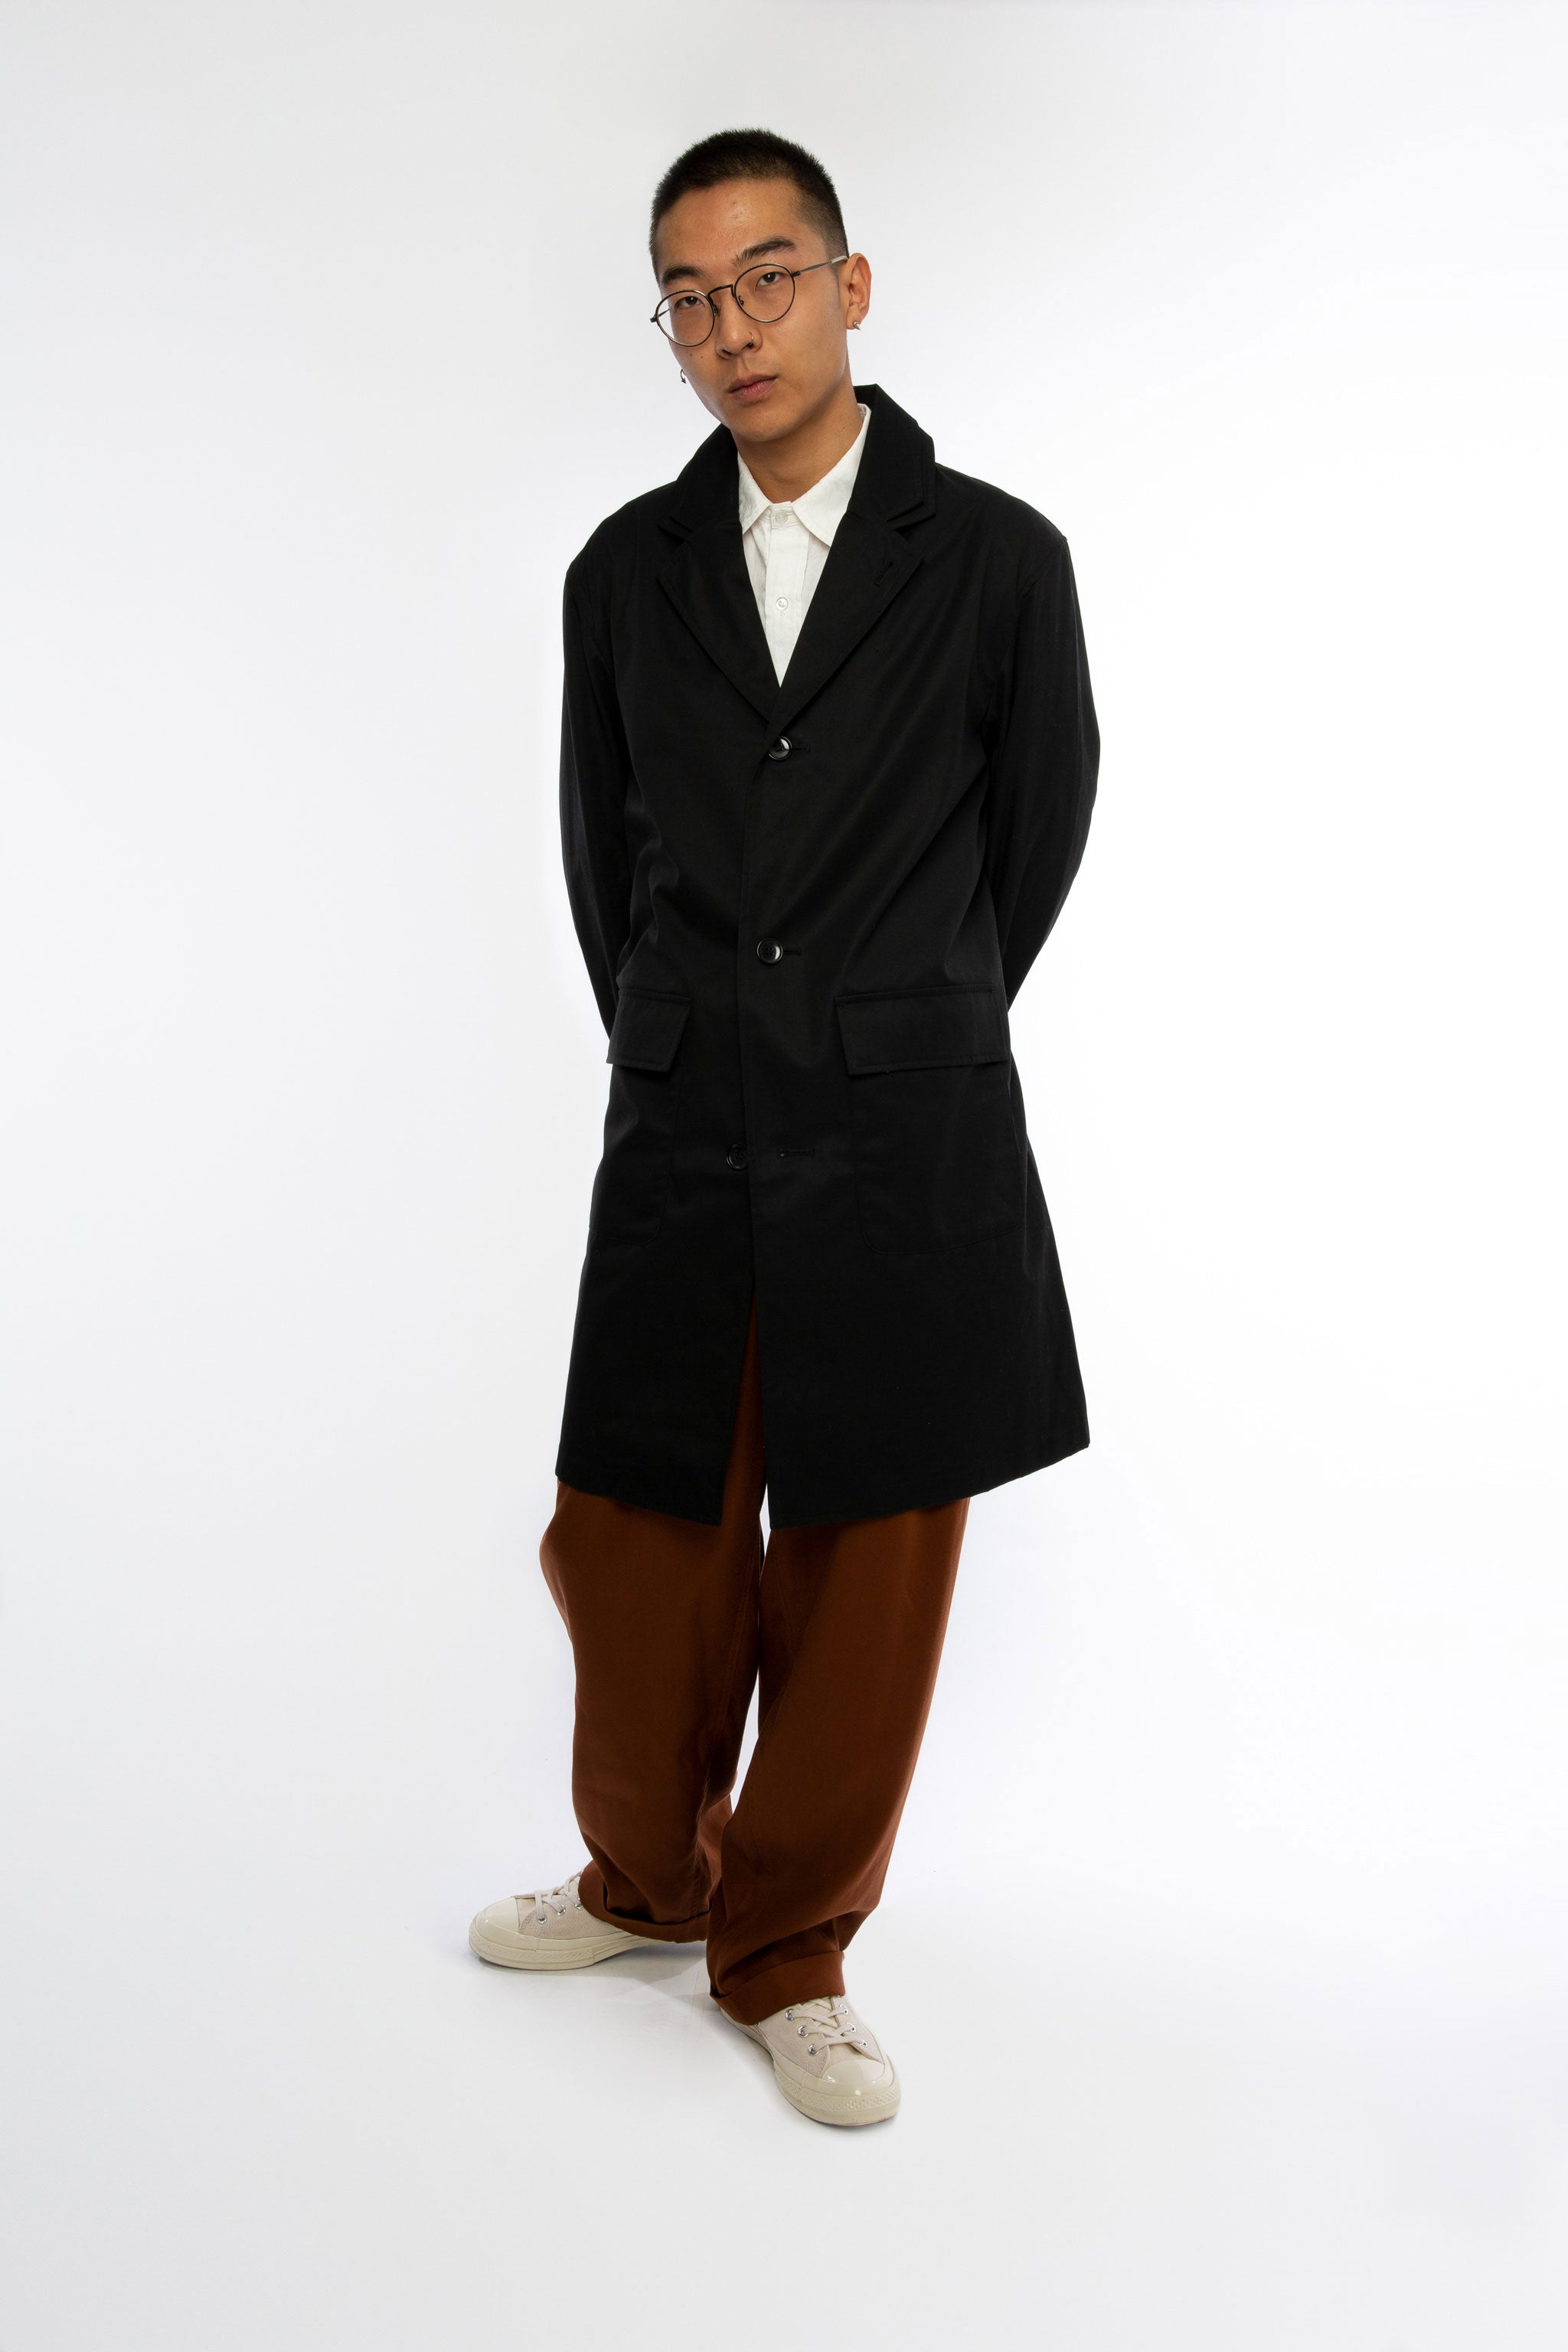 Goodfight SS19 Spring Clean Trench Black